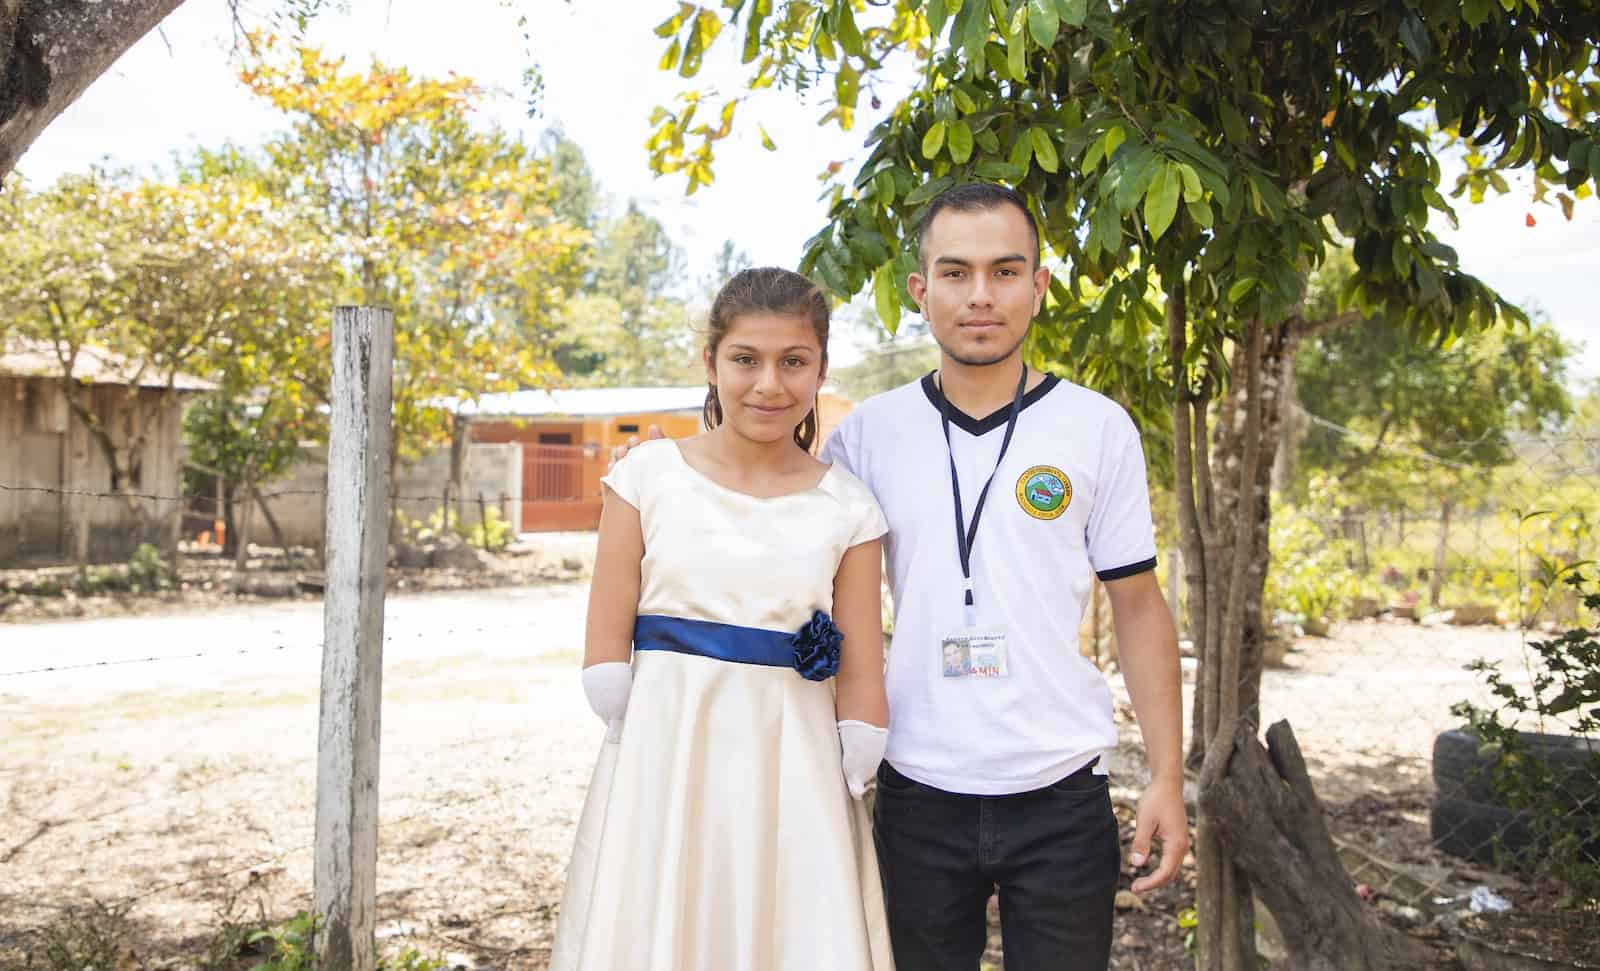 A young man and a girl with limb difference stand outside in front of a tree.